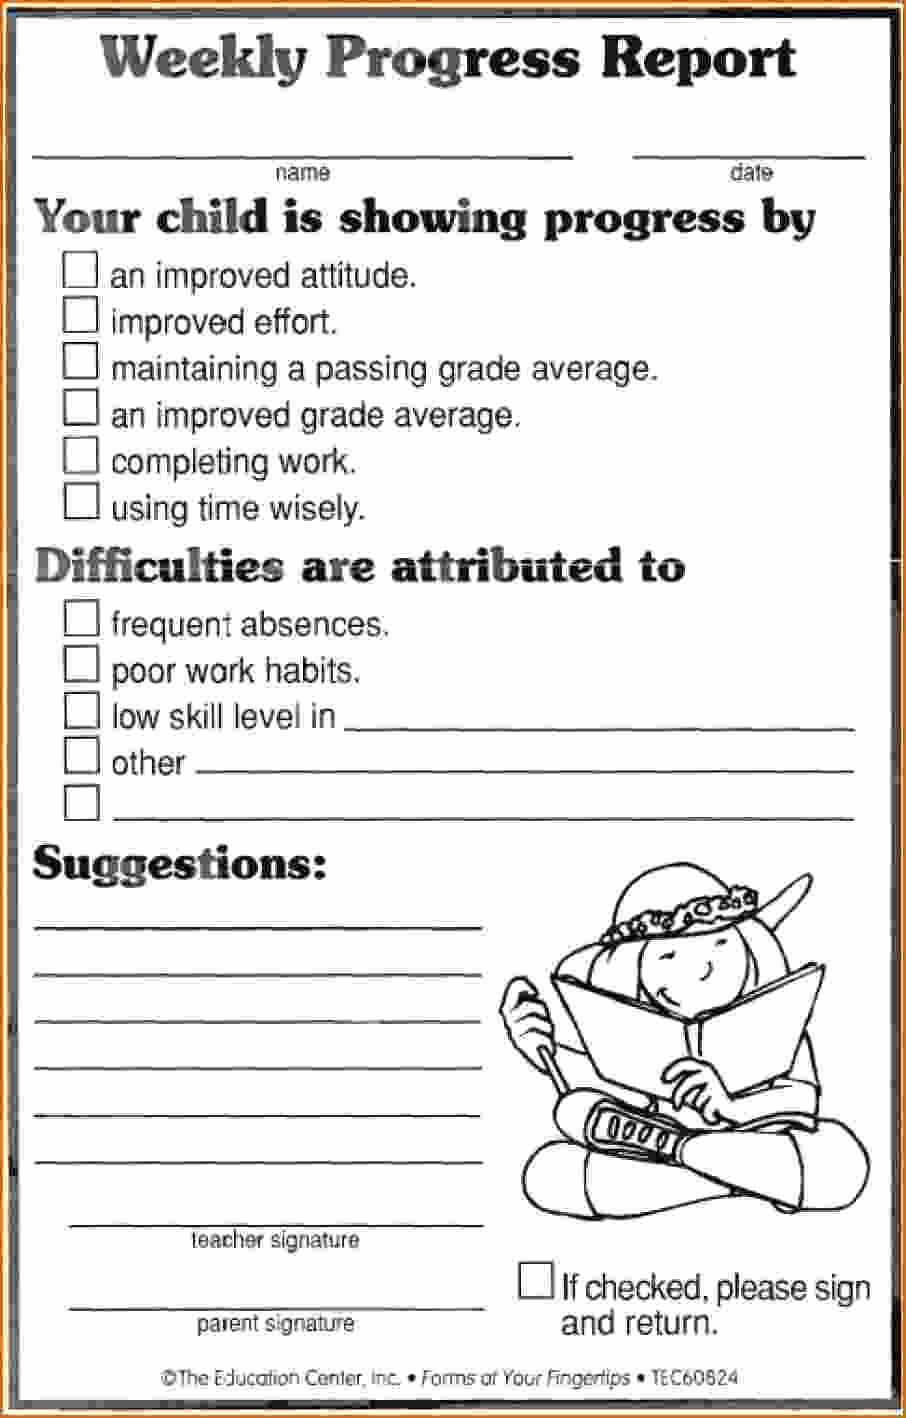 School Progress Report Template Inspirational 12 Weekly Progress Report Template